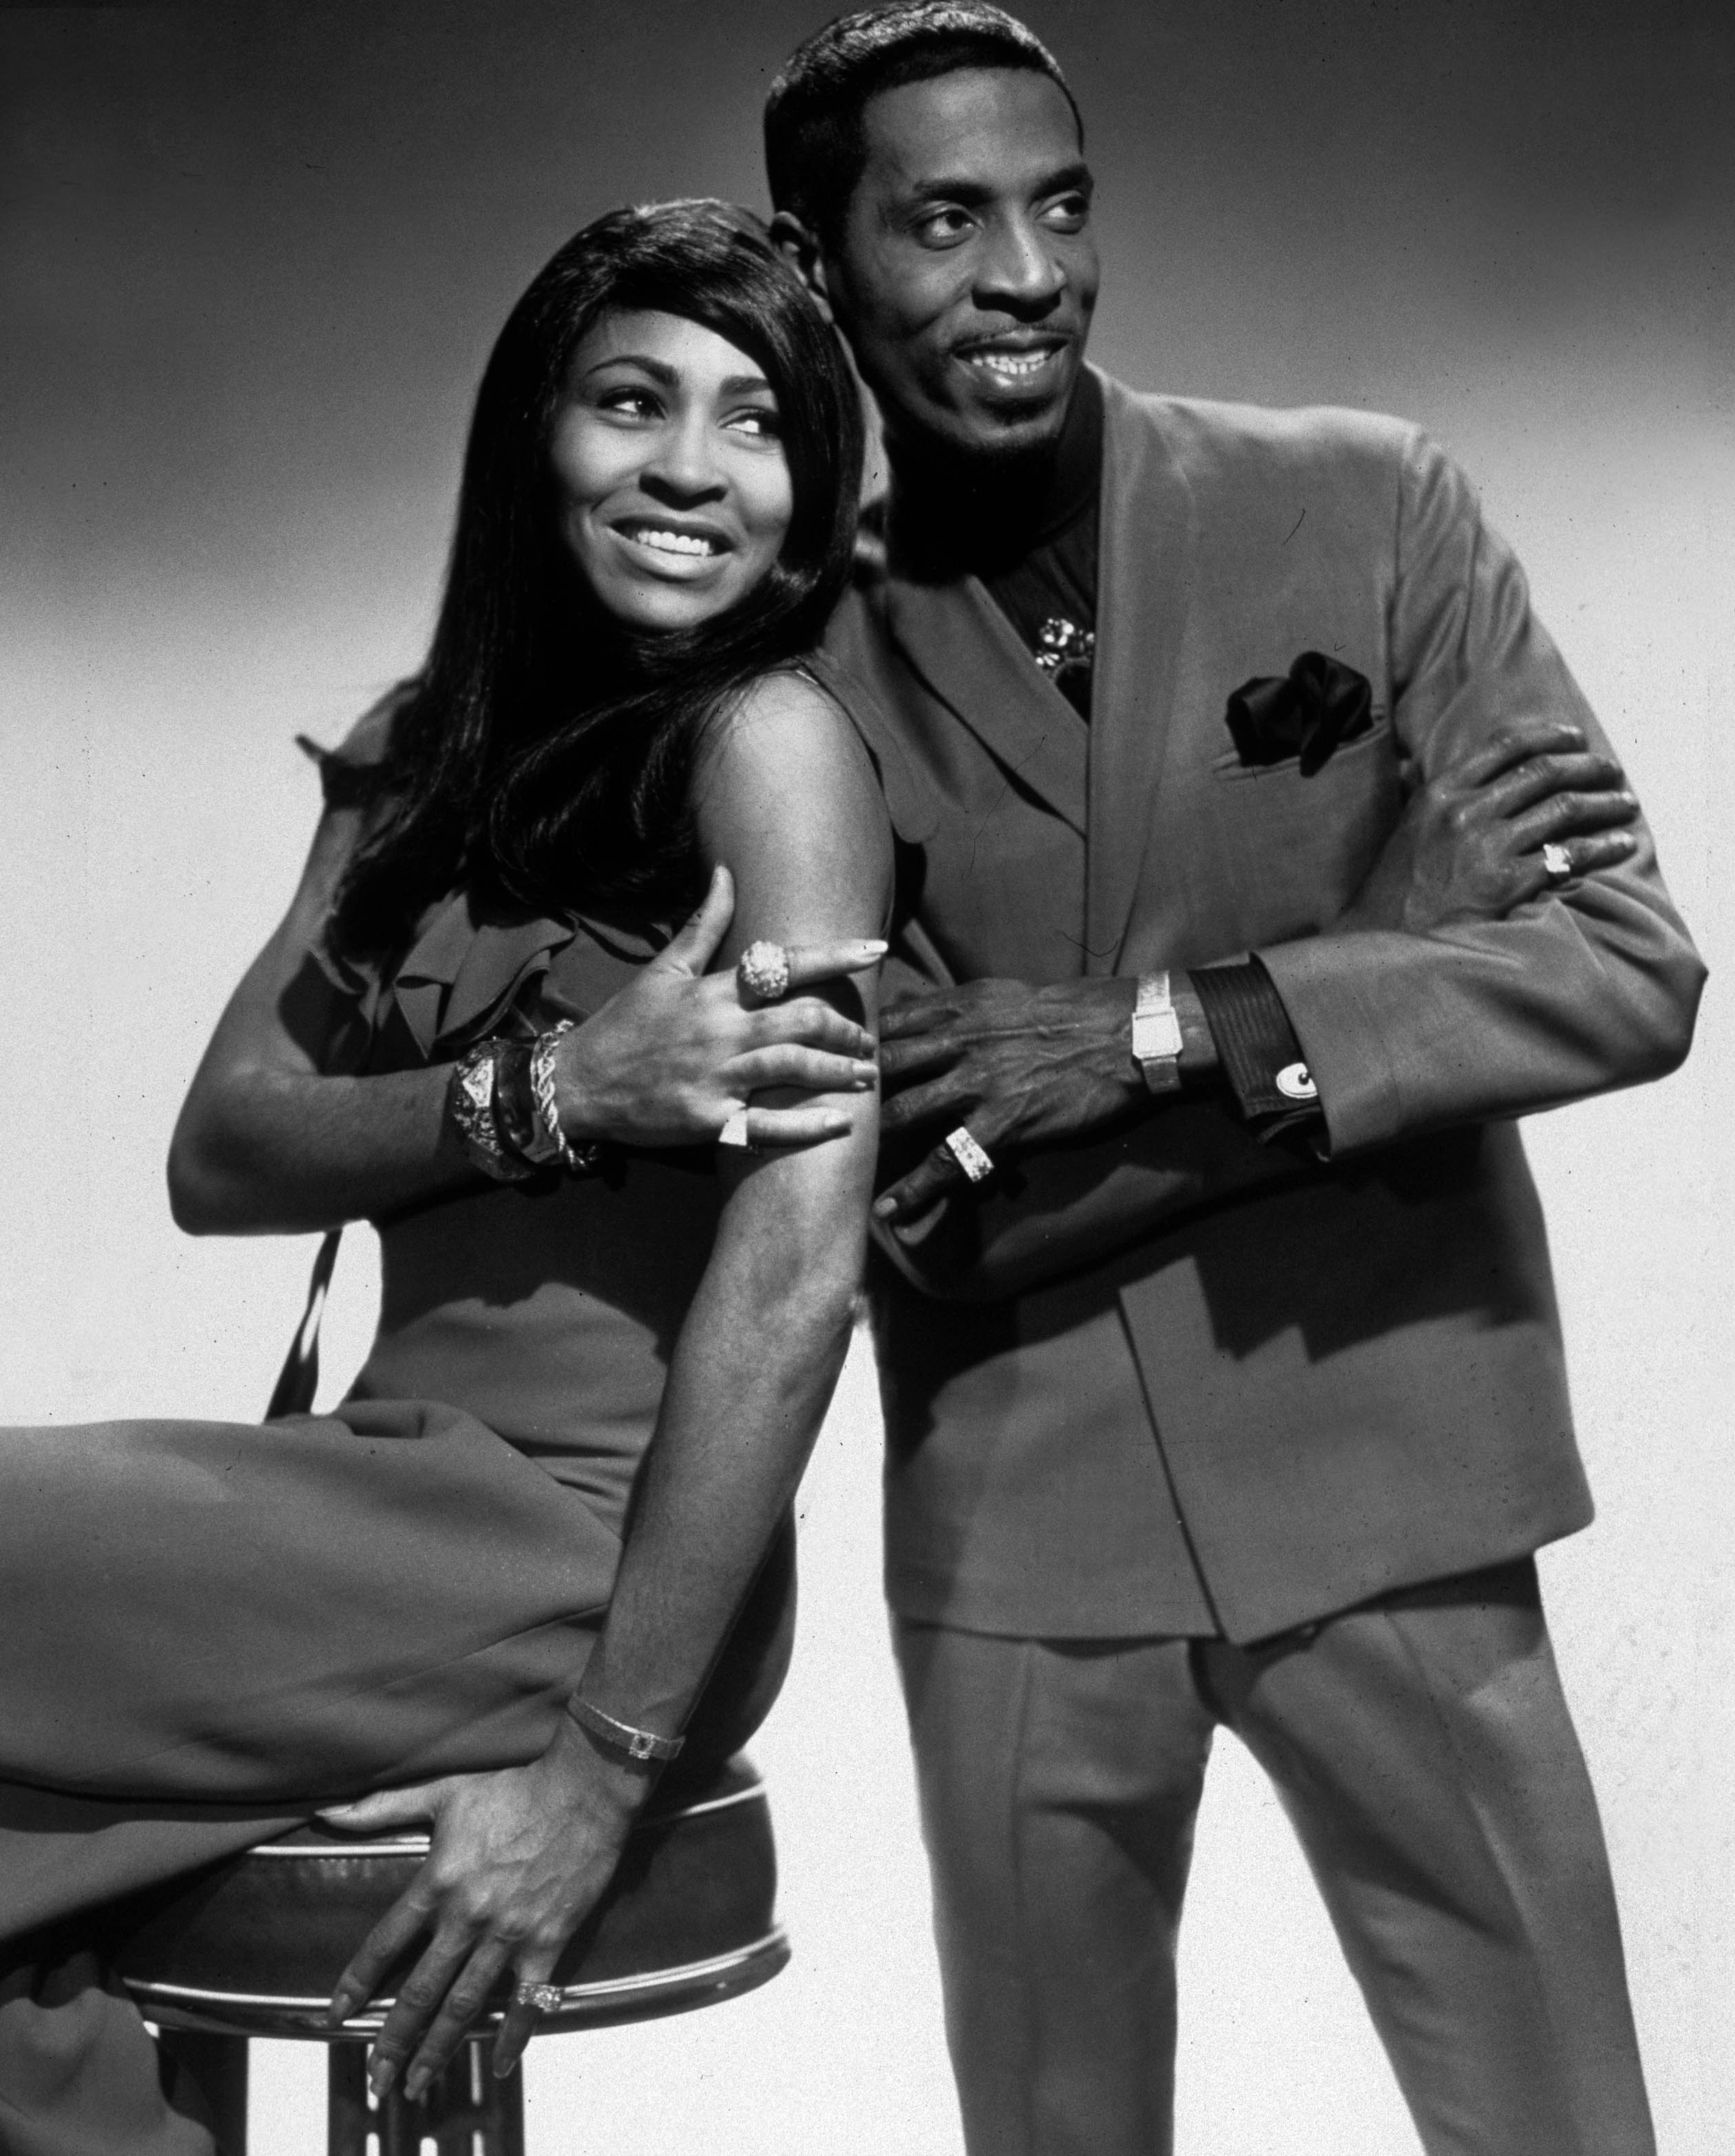 Ike Turner and his wife Tina Turner in 1965. | Source: Getty Images.